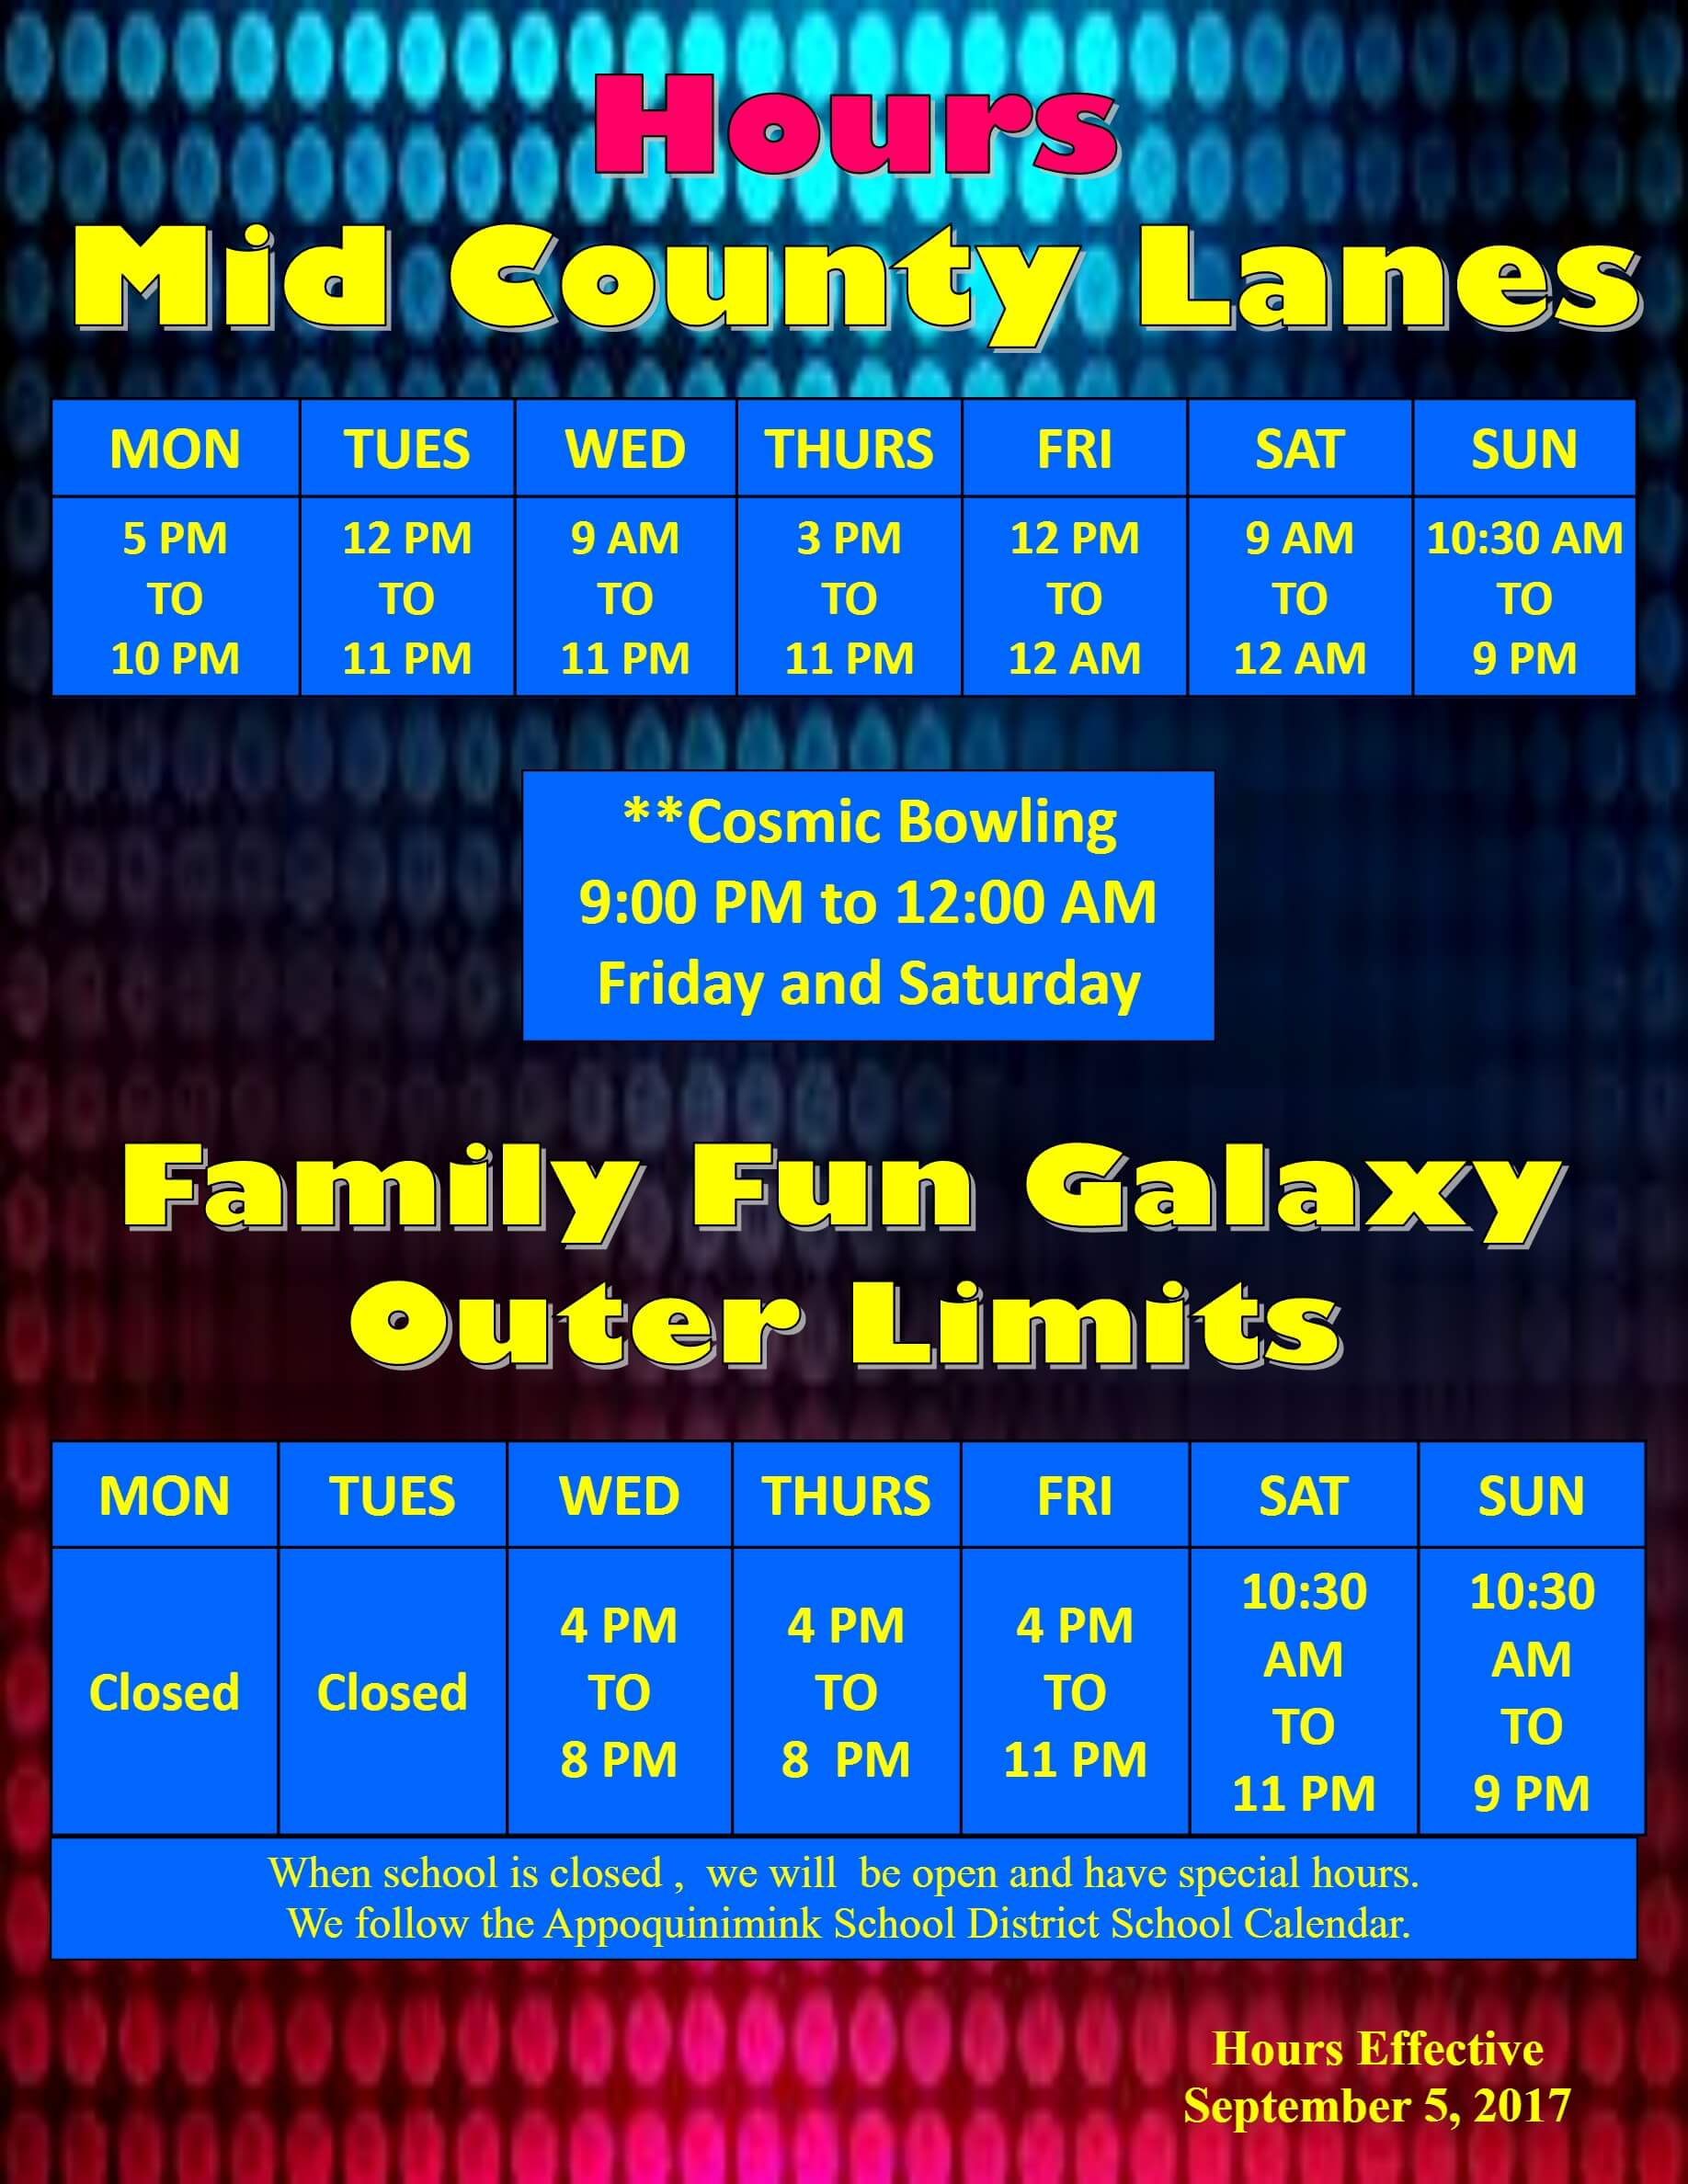 Mid County Lanes Fall Hours